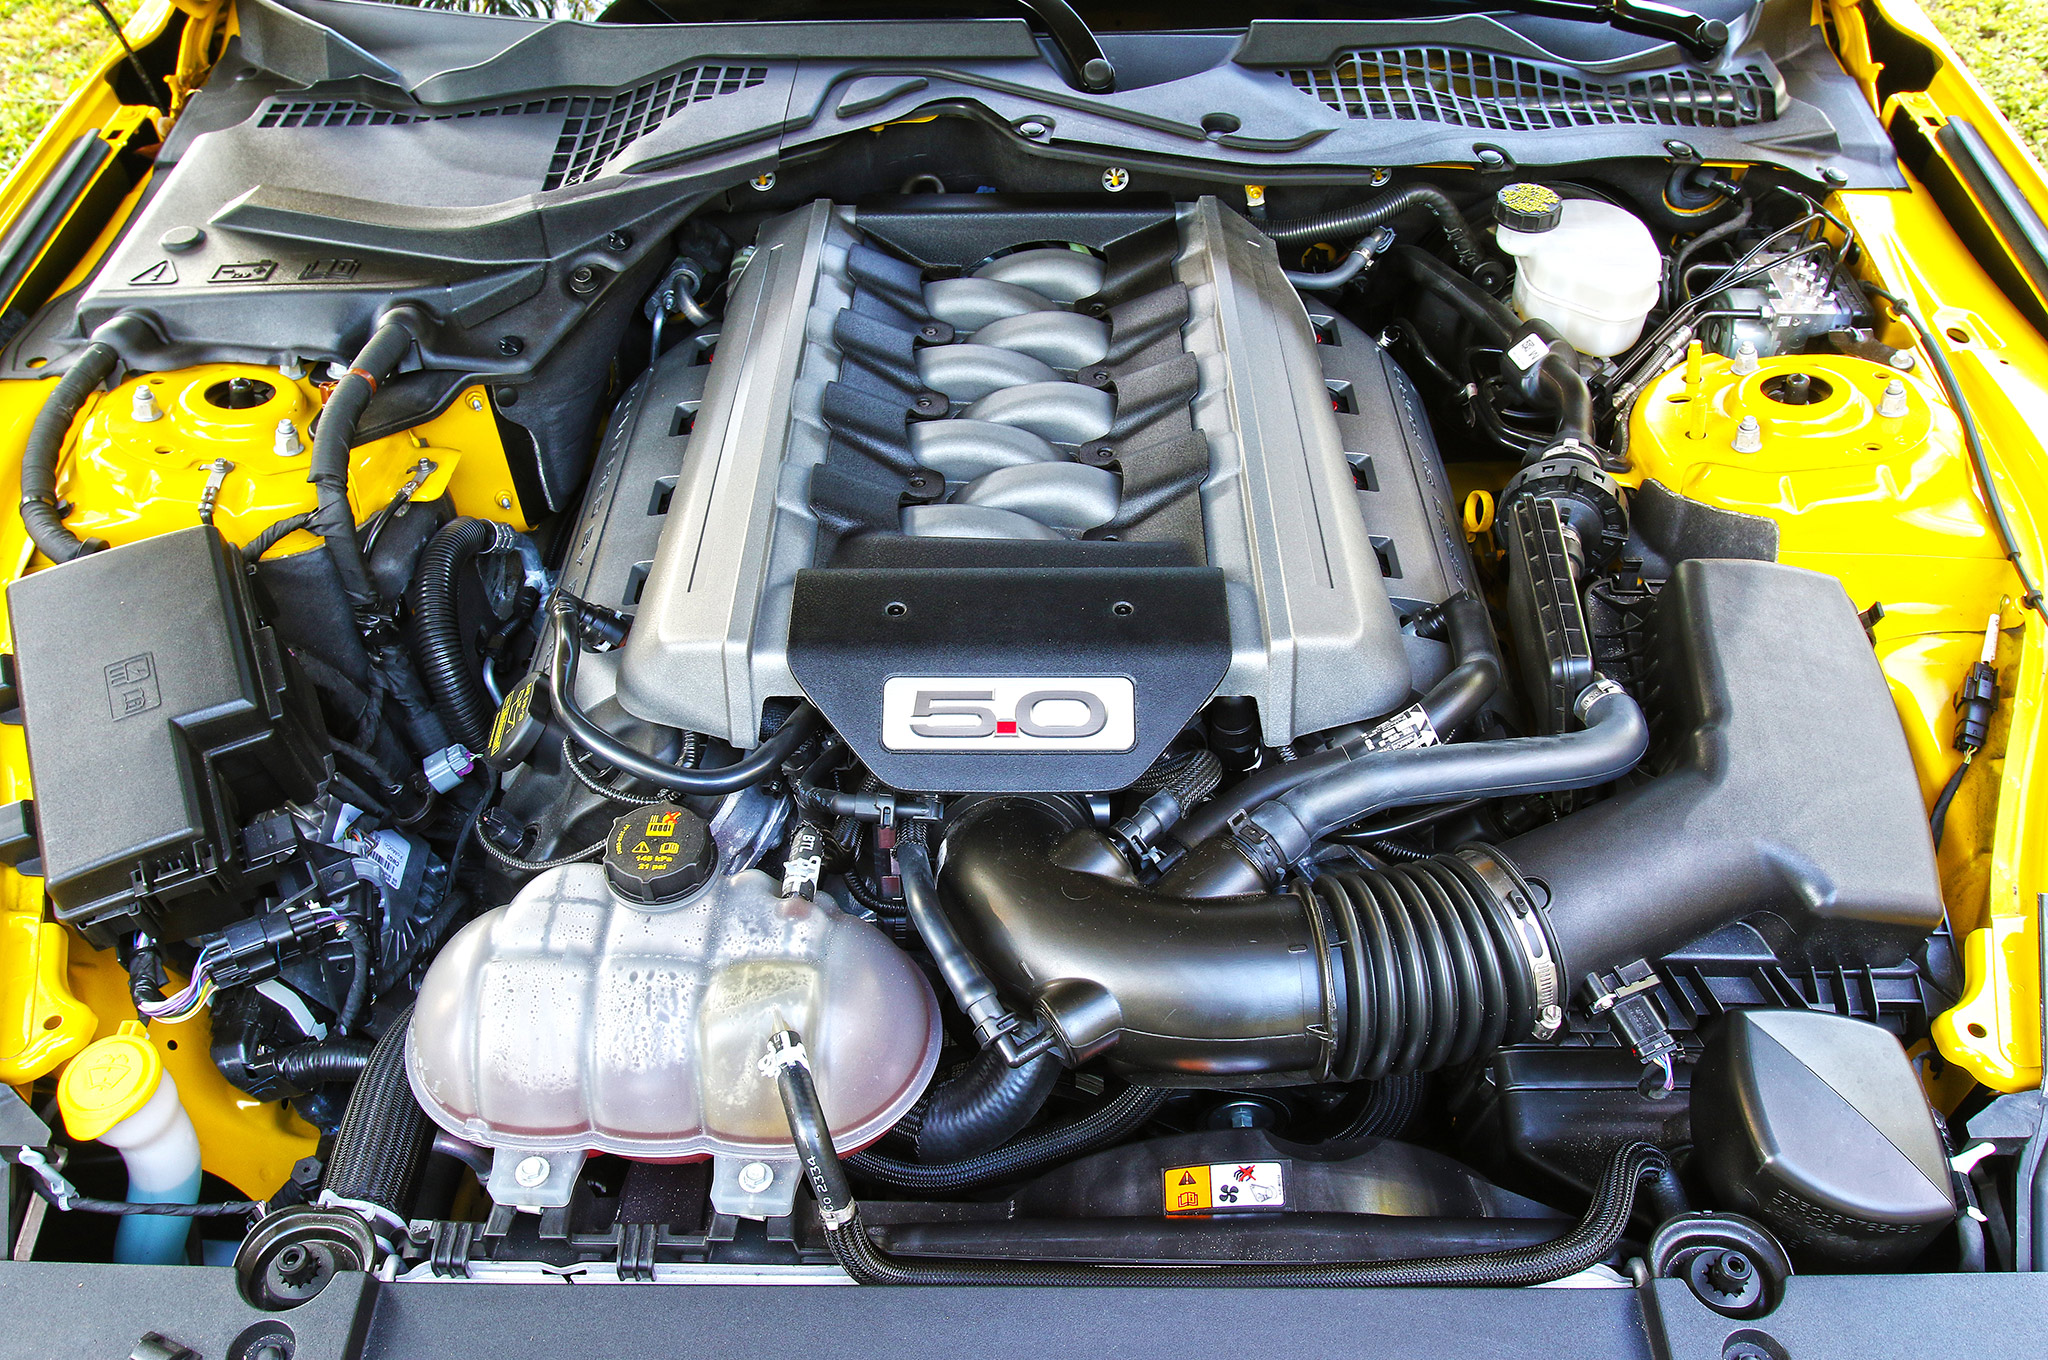 The factory 5.0 Coyote looks cool and produces 435 hp. It sounds ultrasweet at redline.